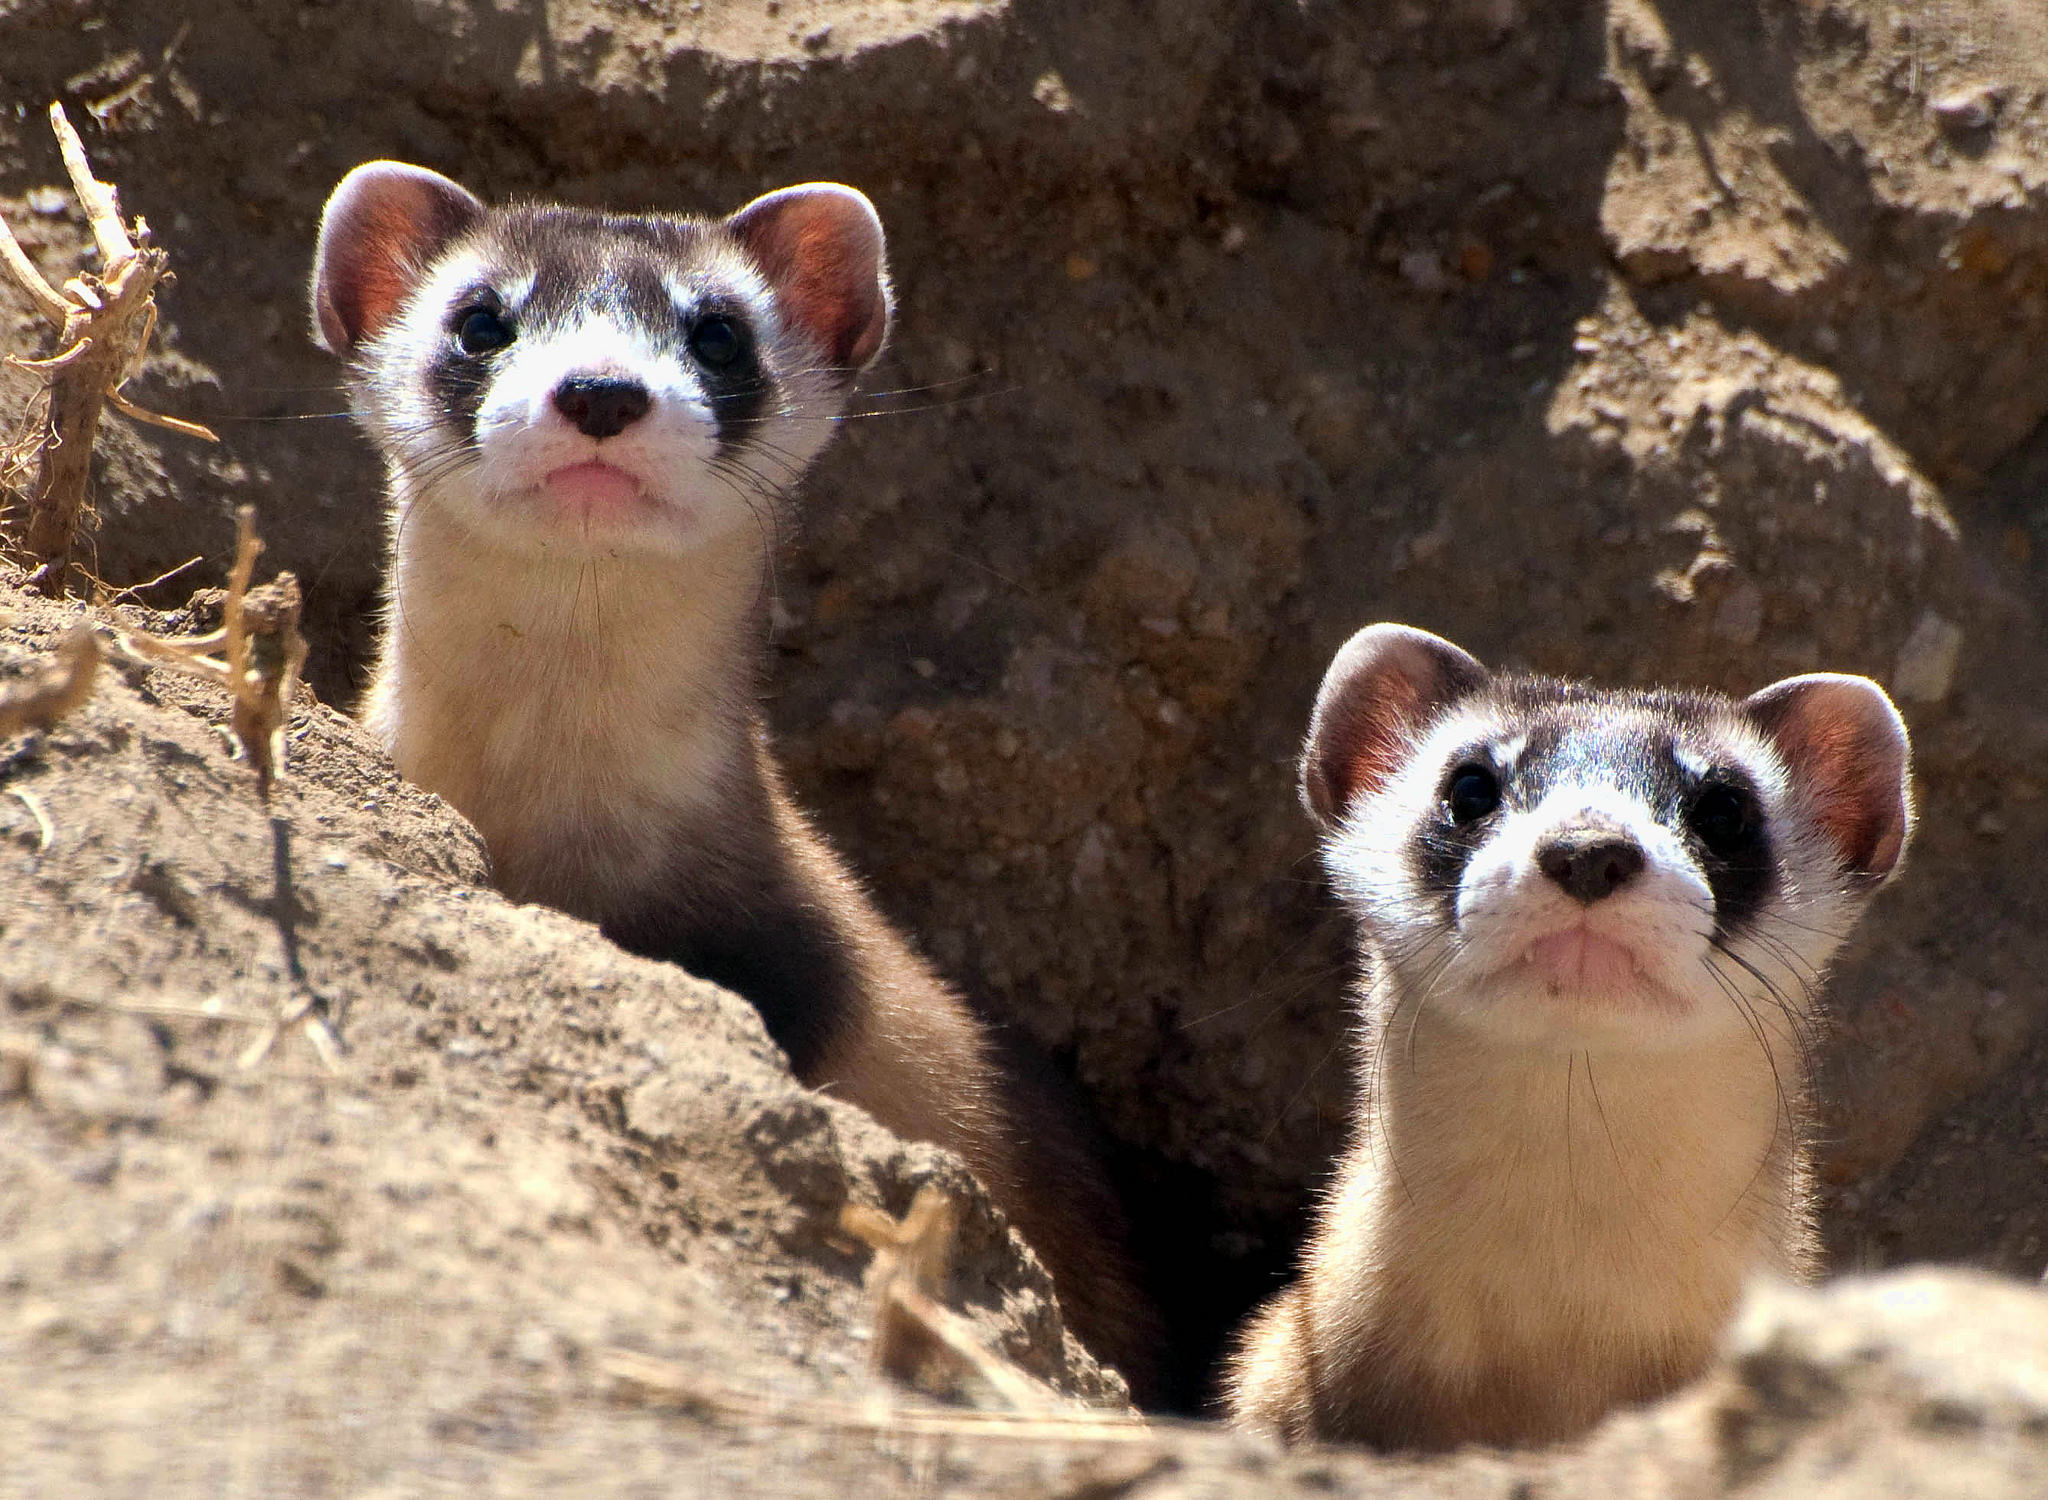 Some inquisitive ferret kits poking their heads out from their burrows! Photo Credit: Kimberly Fraser / USFWS